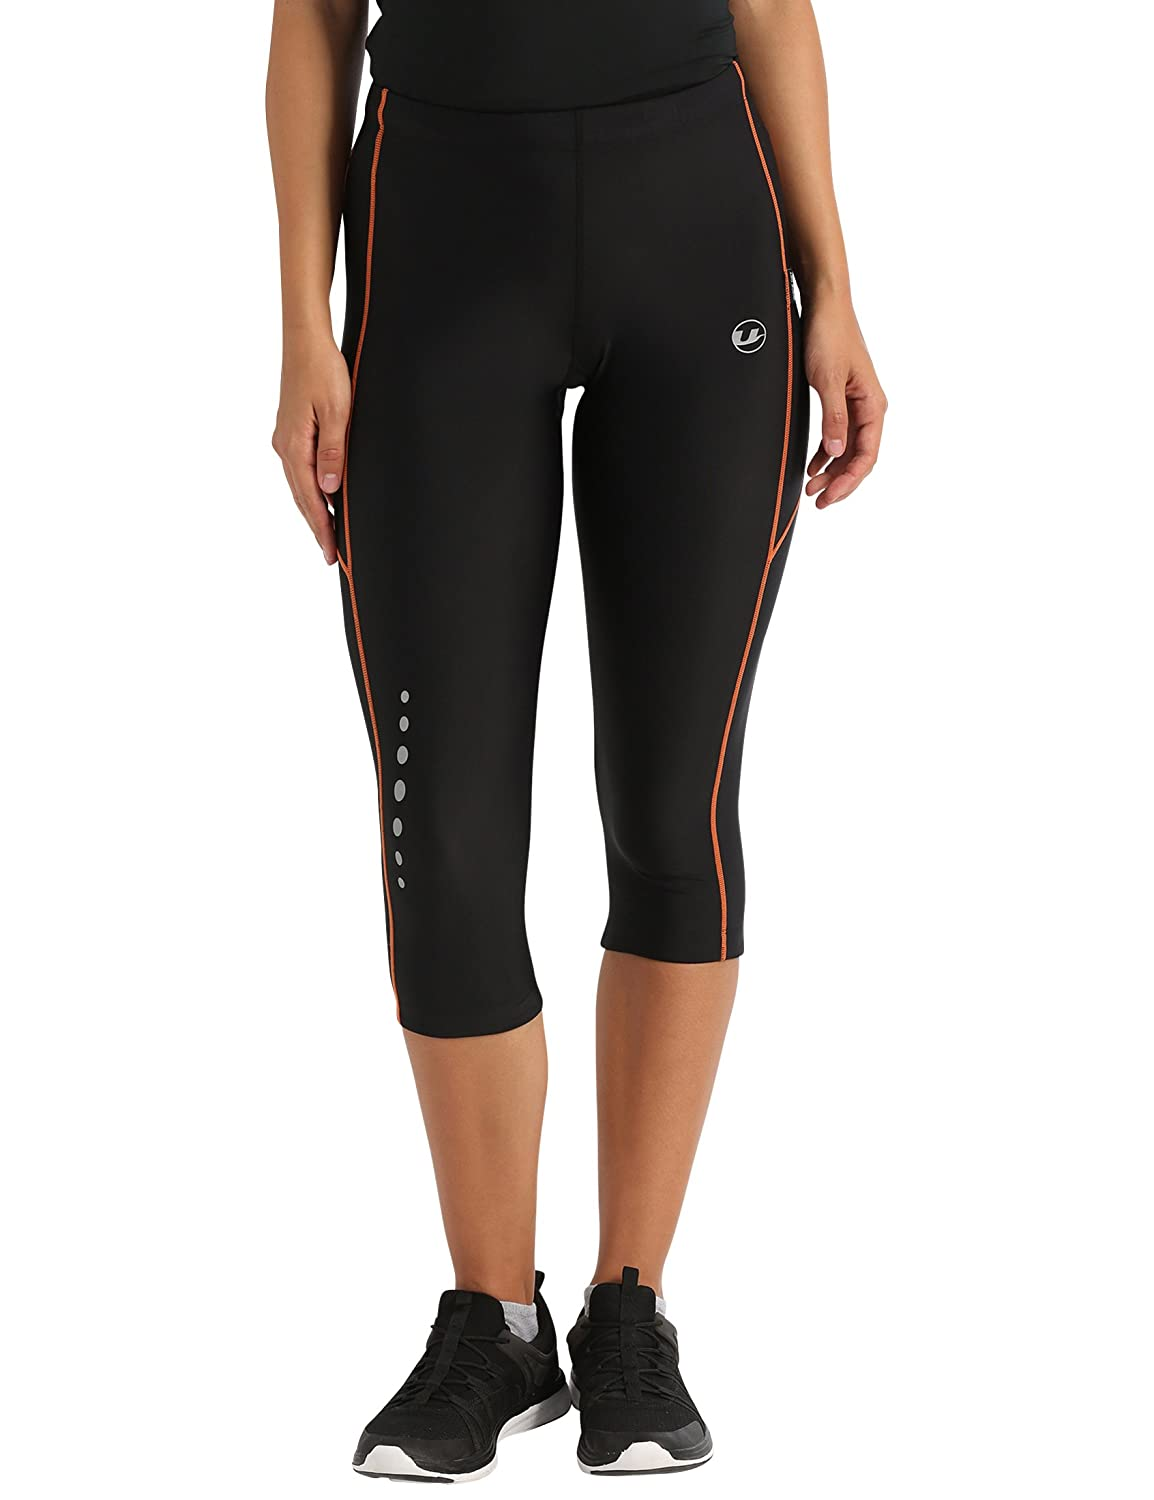 Ultrasport Women's Running Pants Capri with Compression Effect & Quick -Dry-Function